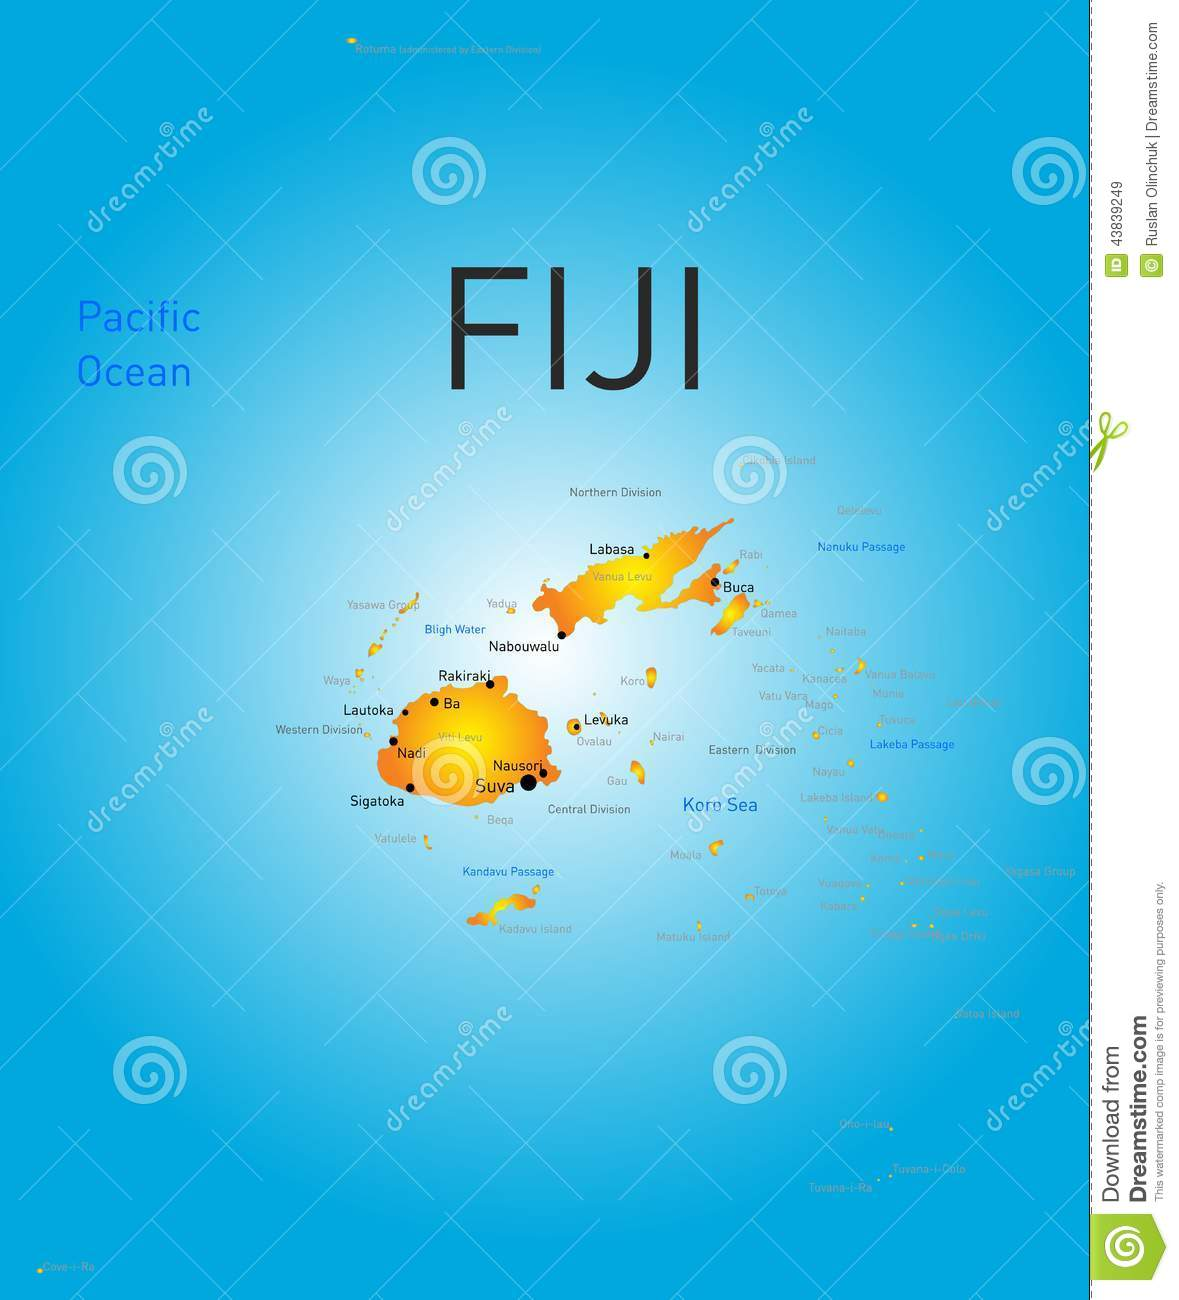 Fiji country stock vector. Illustration of abstract, islander - 43839249